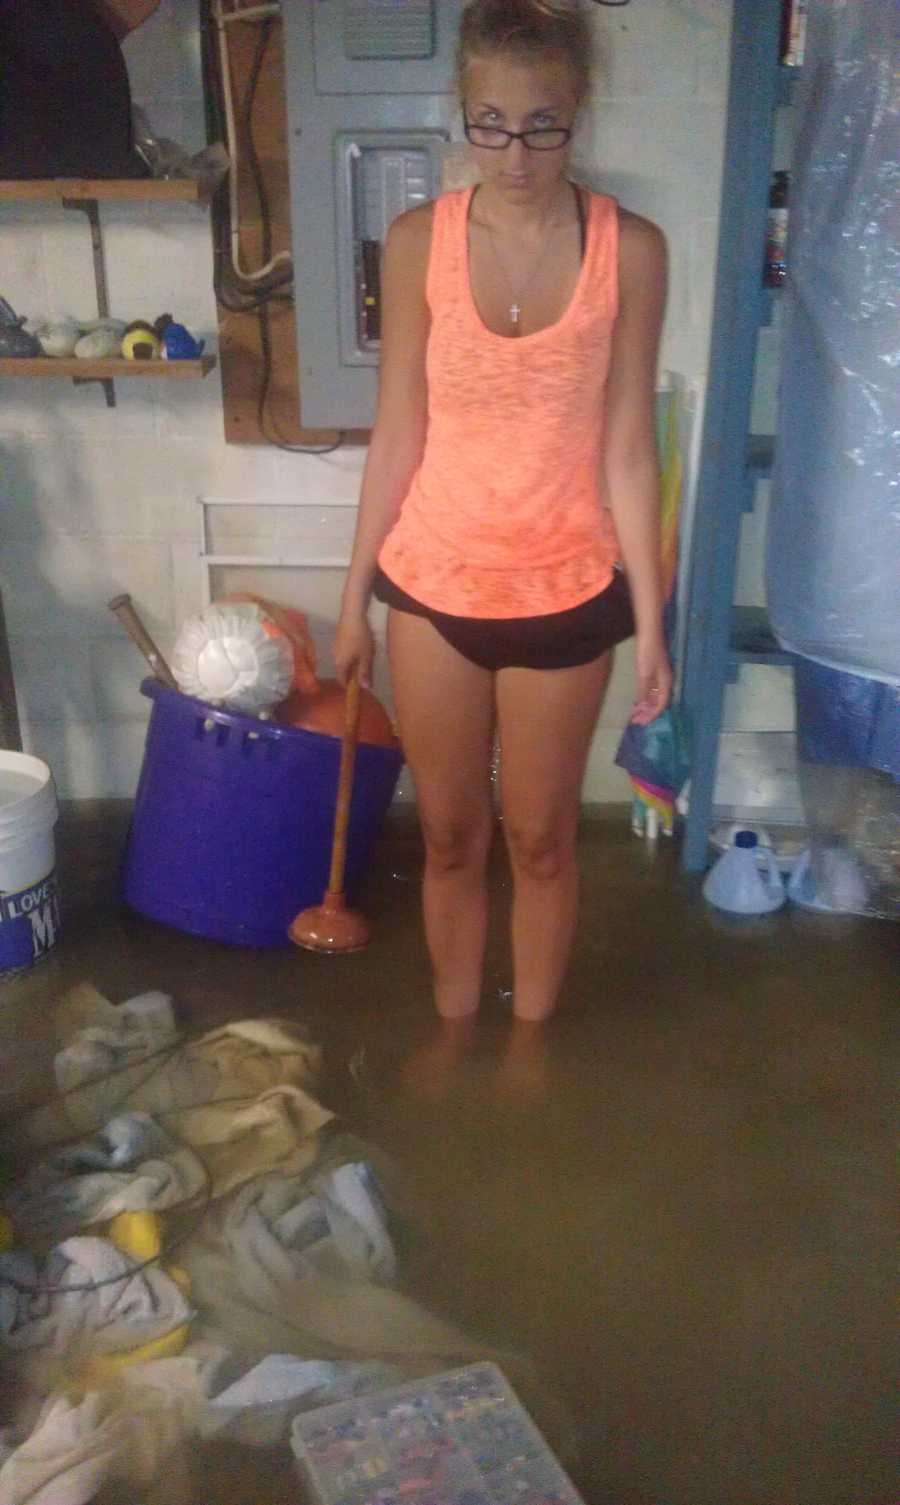 Photos sent in from the flooding in DuBois, PA (Jefferson County).